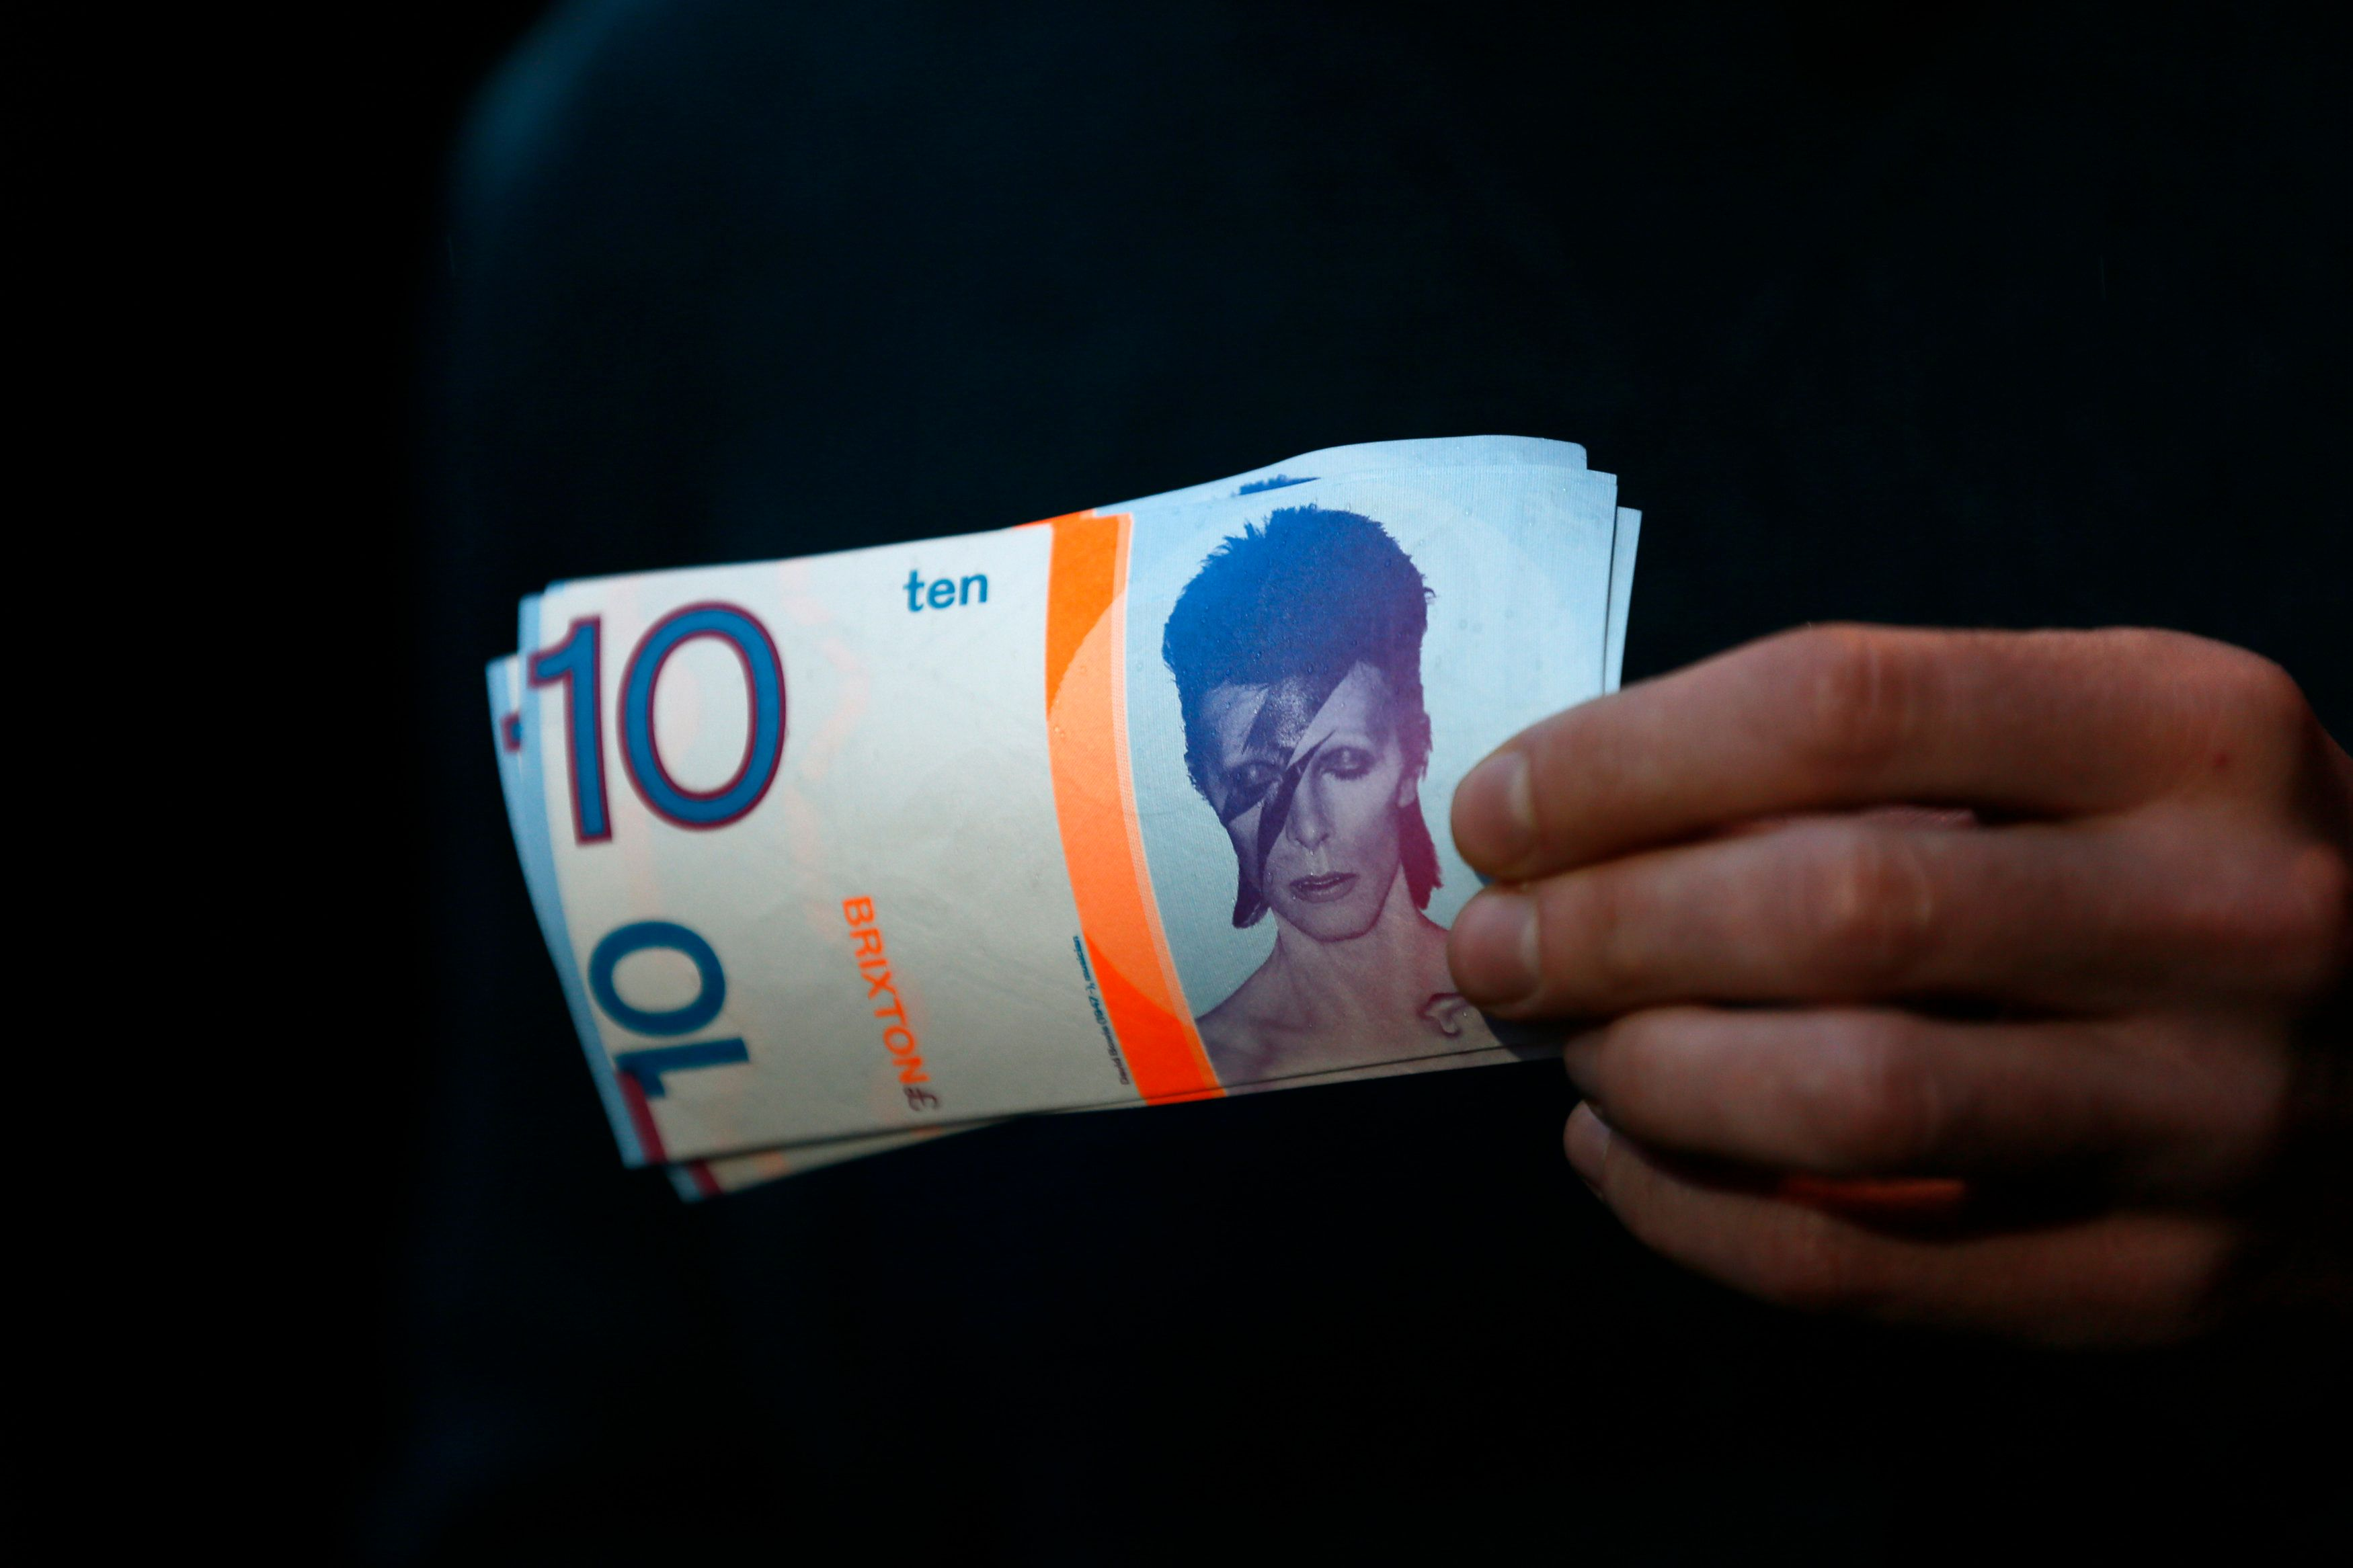 A note worth 10 Brixton pounds, an alternative currency in London, is illustrated with an image of David Bowie.